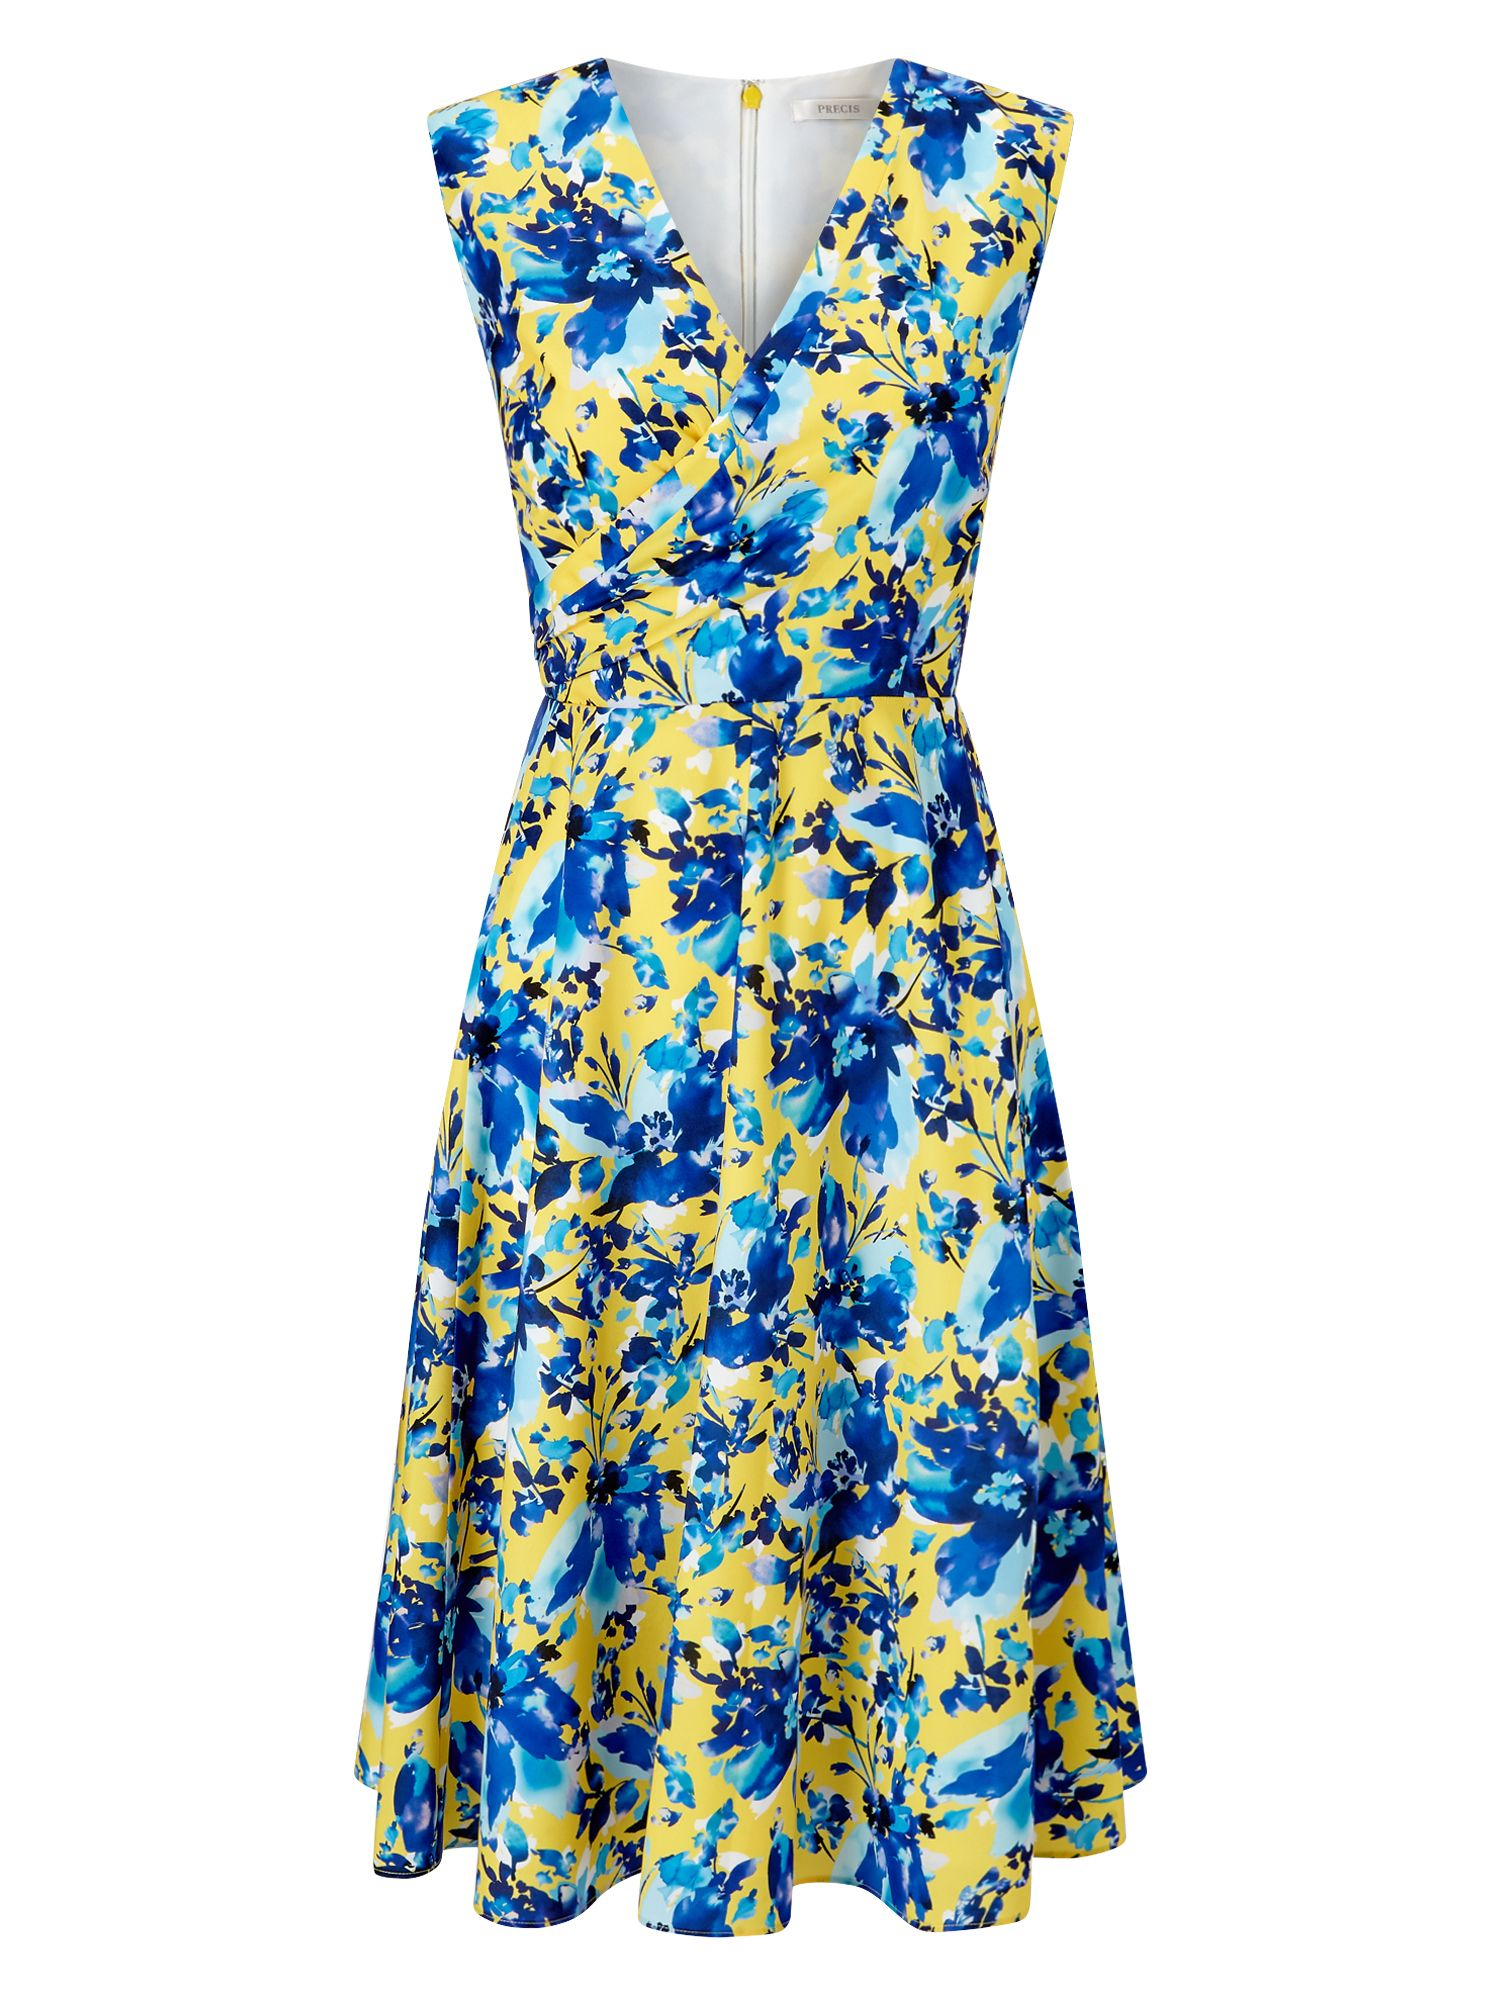 Precis Petite Petite Printed Wrap Dress, Yellow